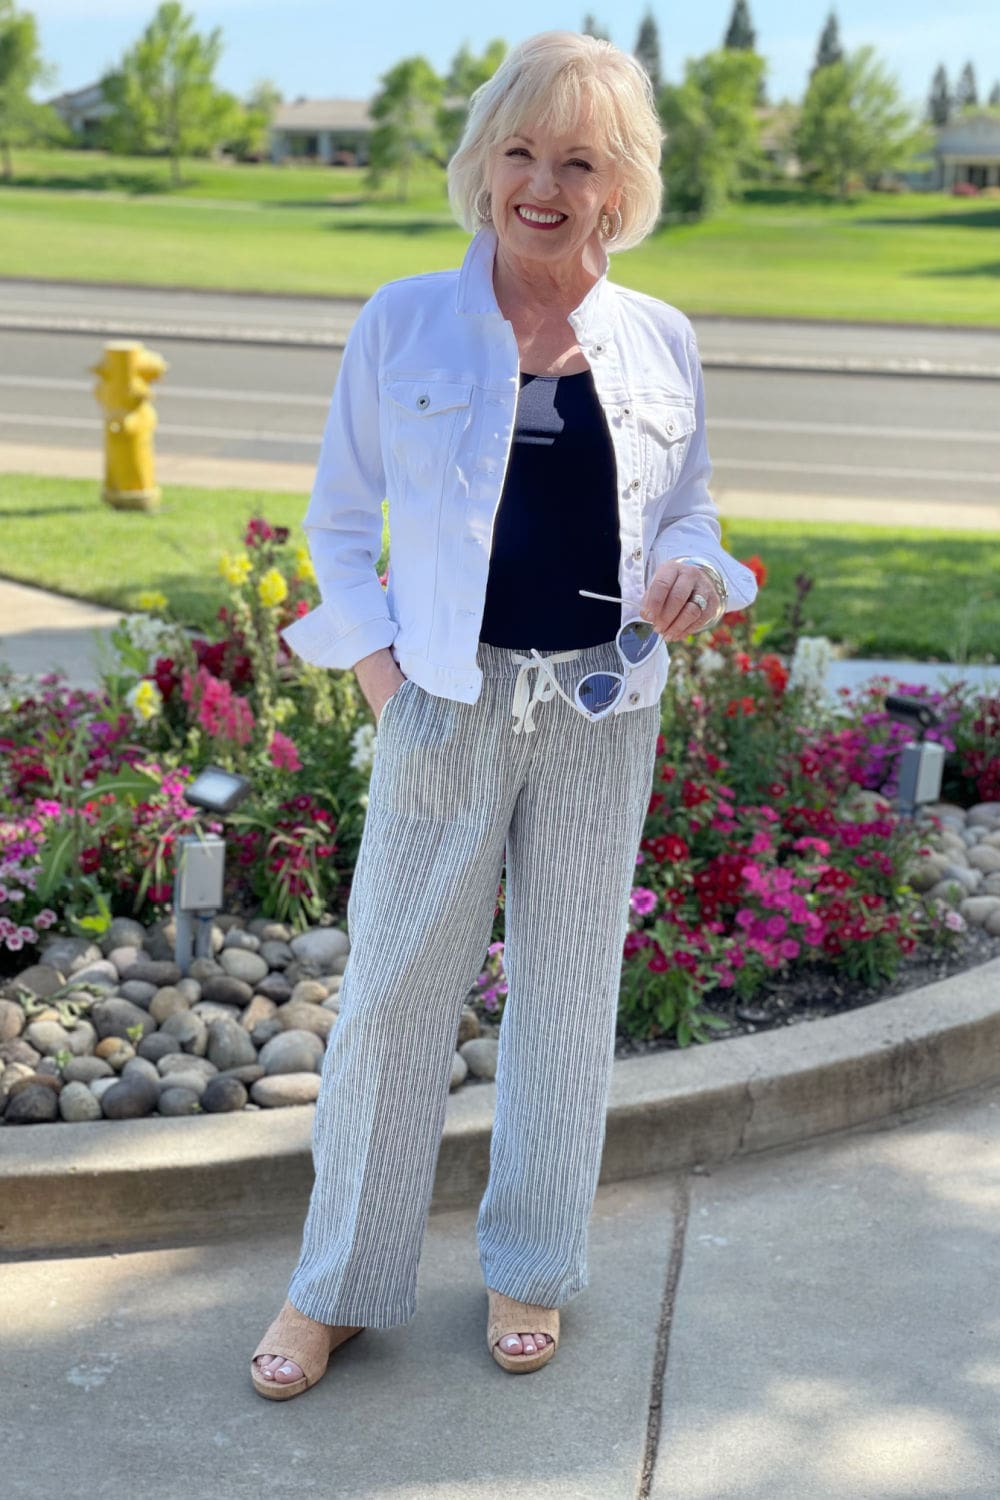 woman standing in front of flower bed wearing white denim jacket and striped linen pants